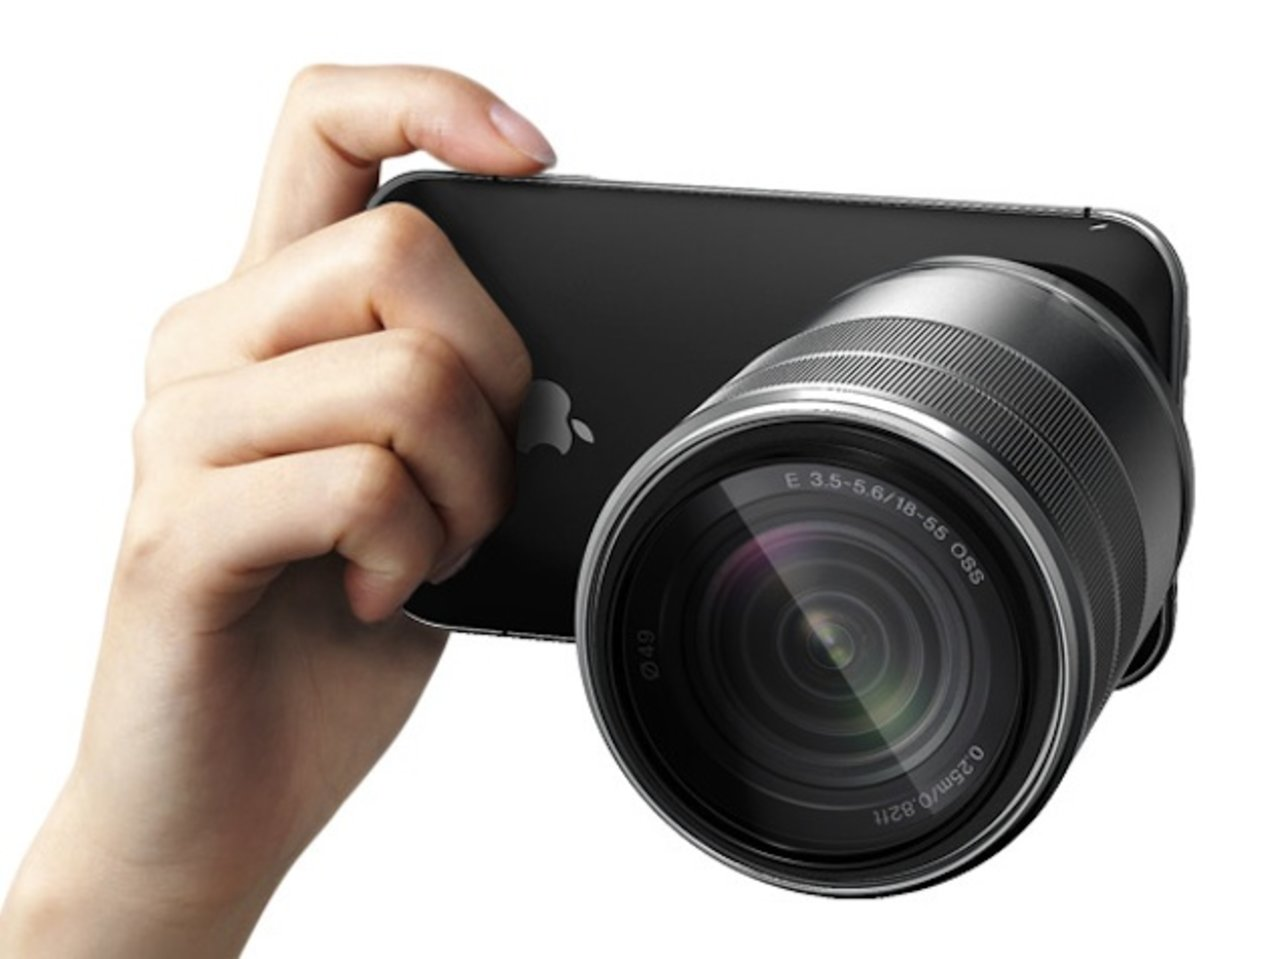 Gallery Iphone Pro Would House 3d Camera And Detachable